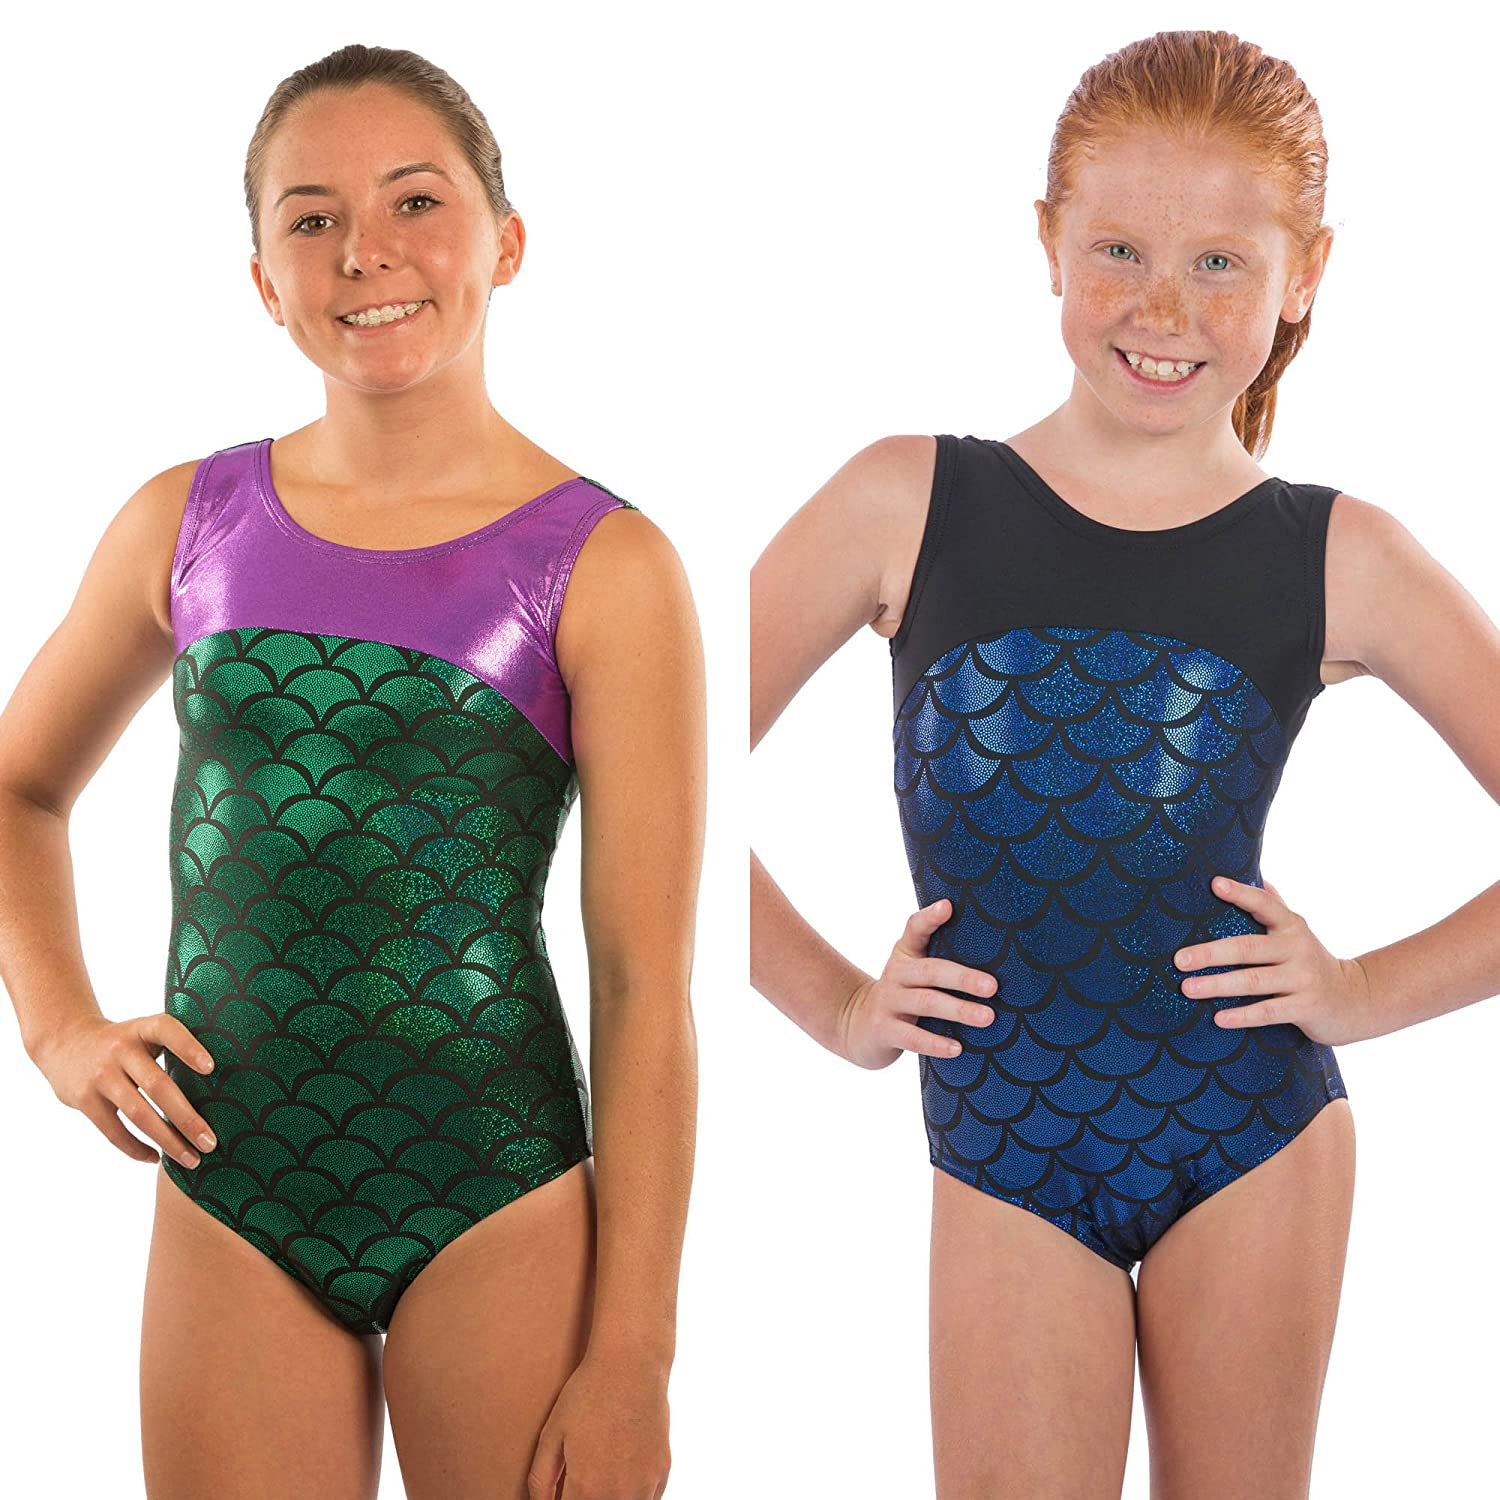 0324bec65 outlet boutique f7501 b7aa3 amazon lizatards girls gymnastics ...